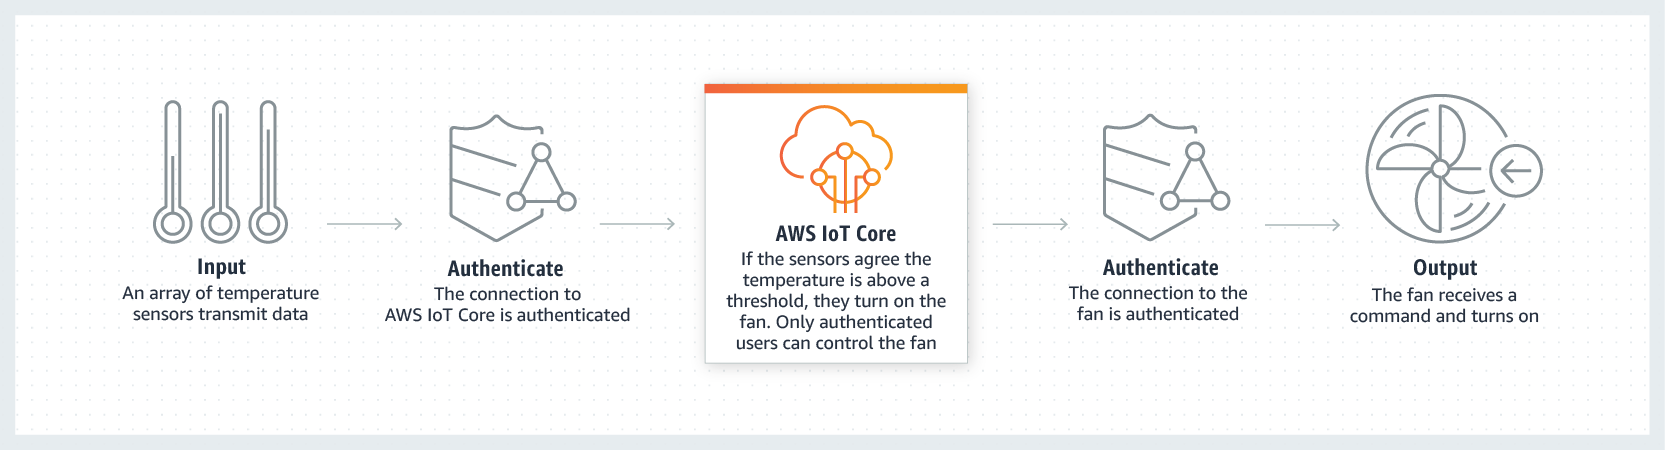 AWS IoT Core Secure Connections